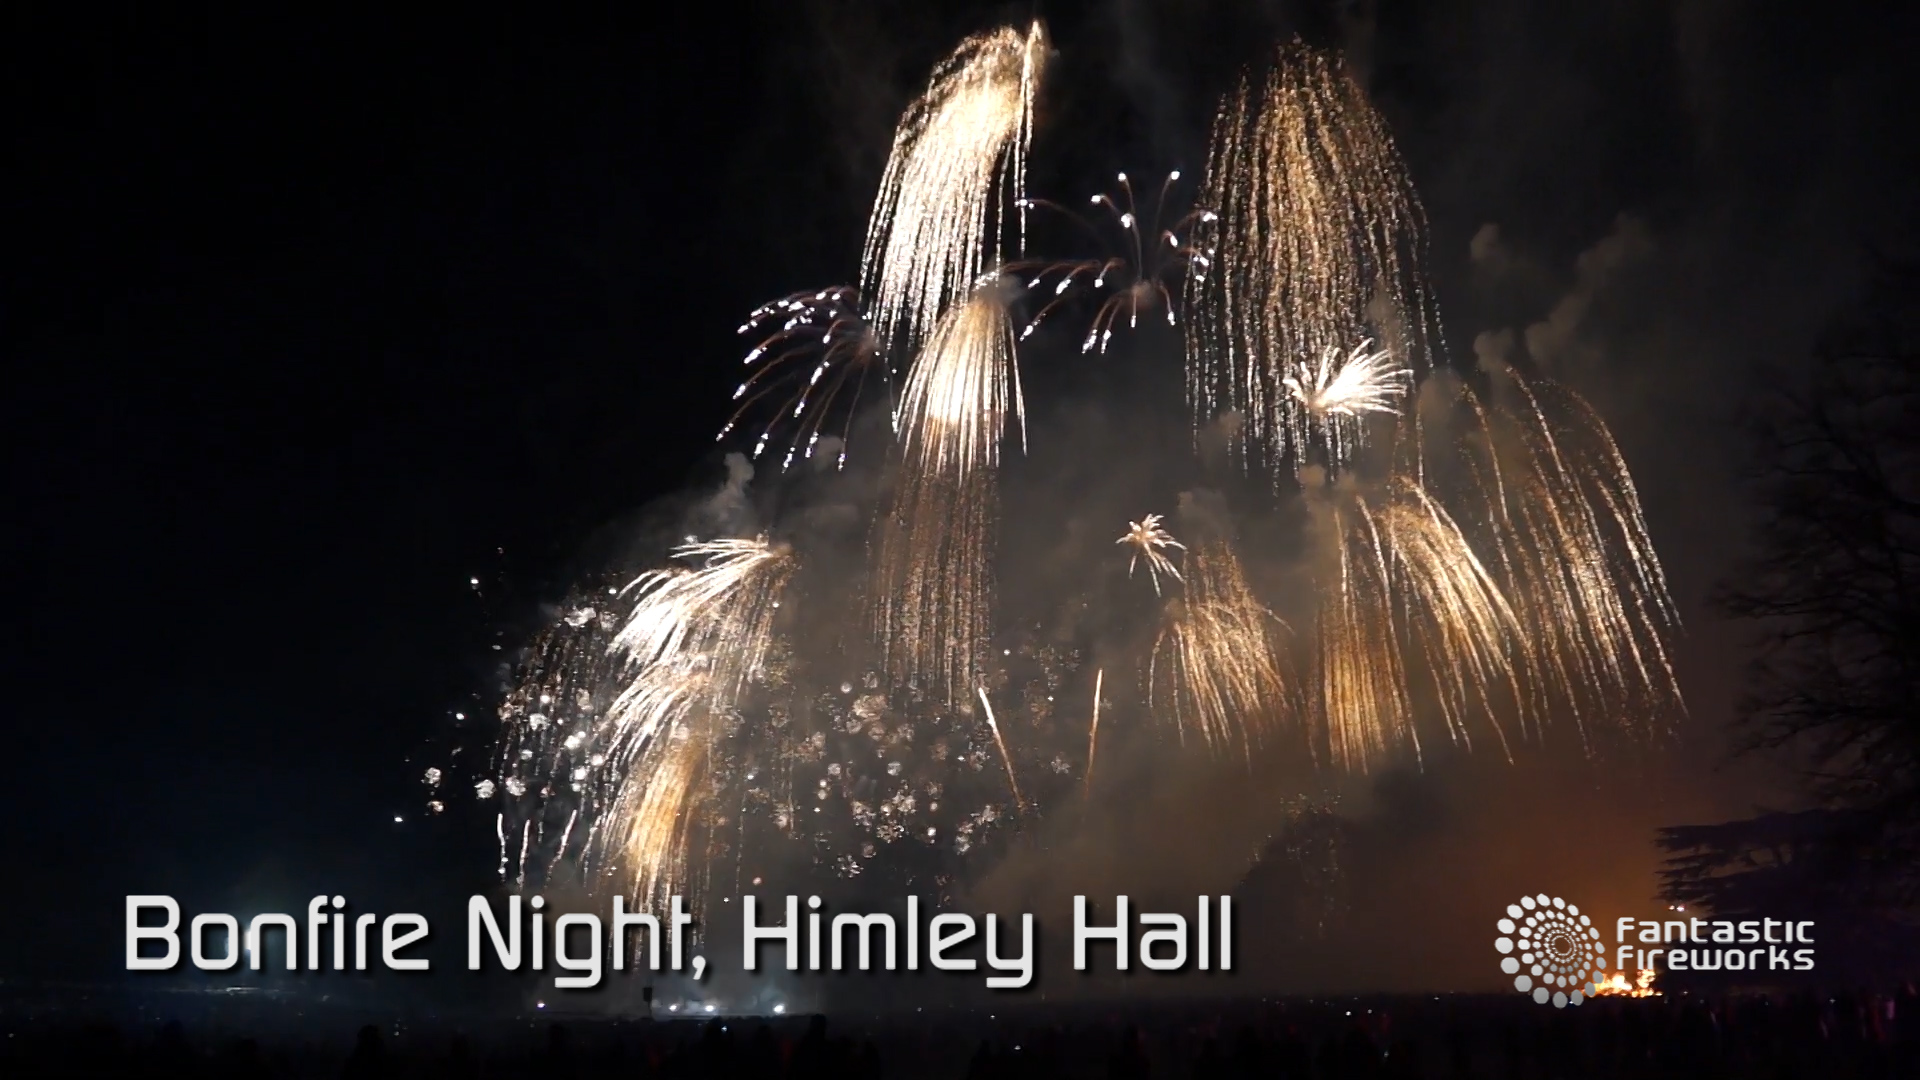 Professional Fireworks Displays | Himley Hall Bonfire Night